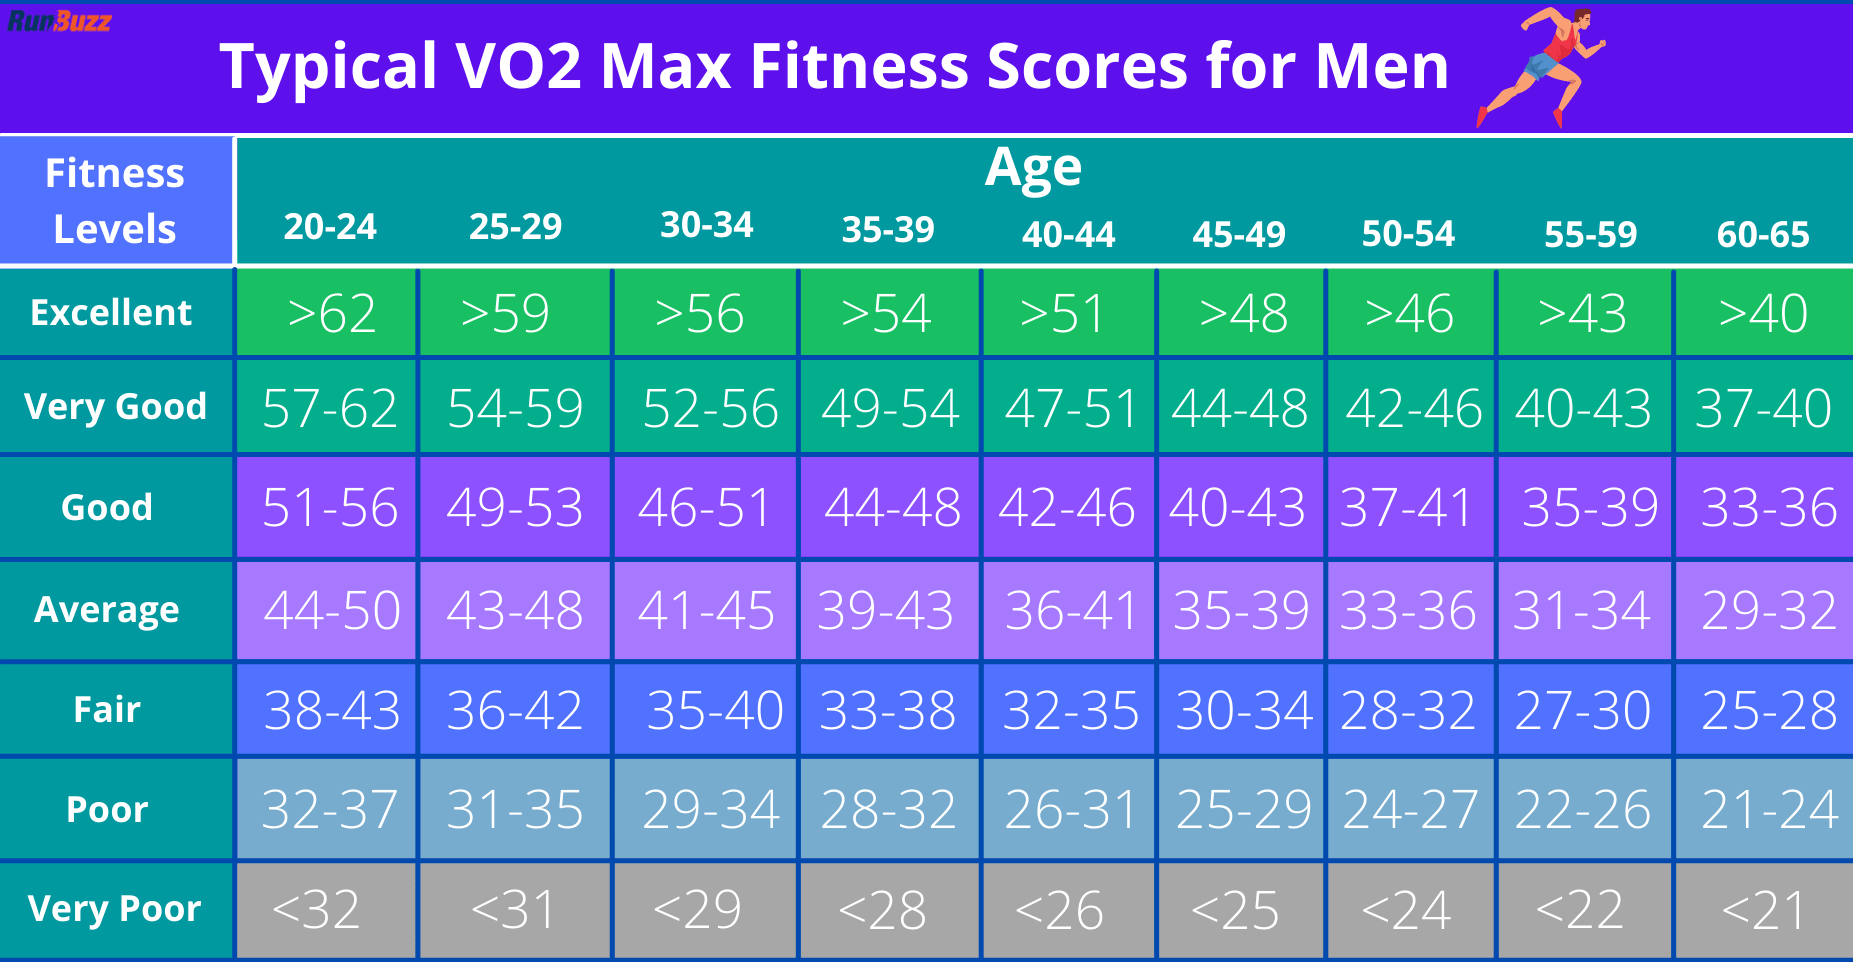 Typical VO2 Max Fitness Scores for Men